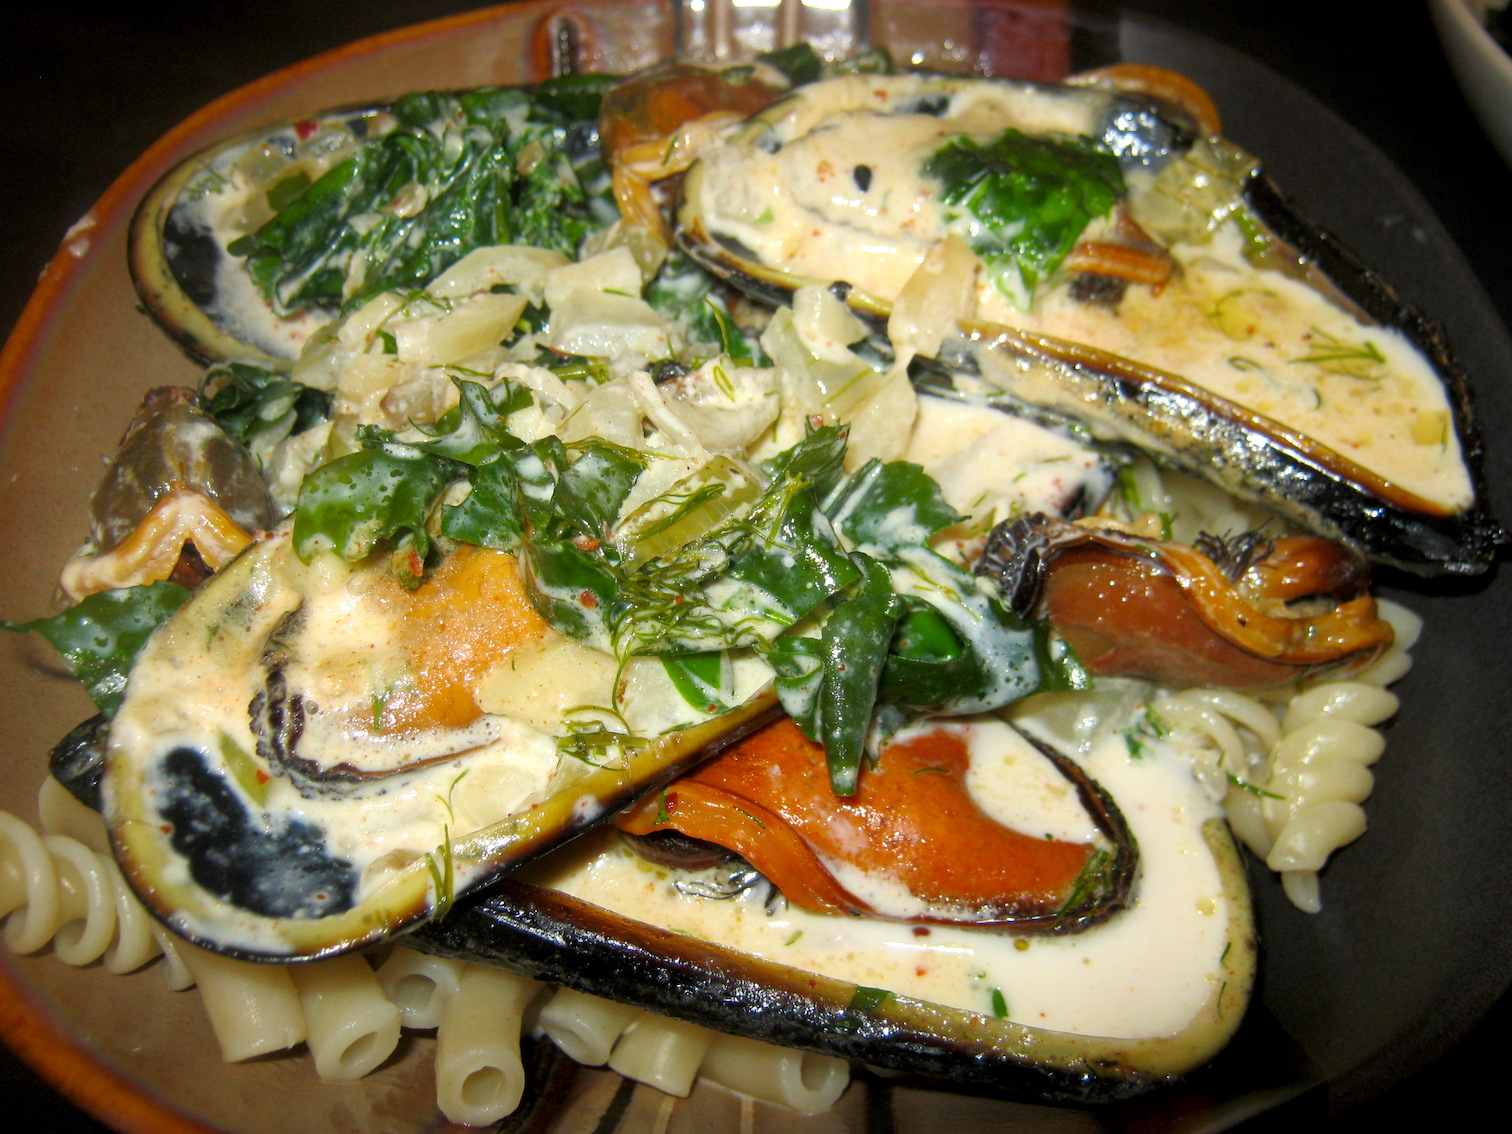 Mussels in Sea lettuce cream sauce